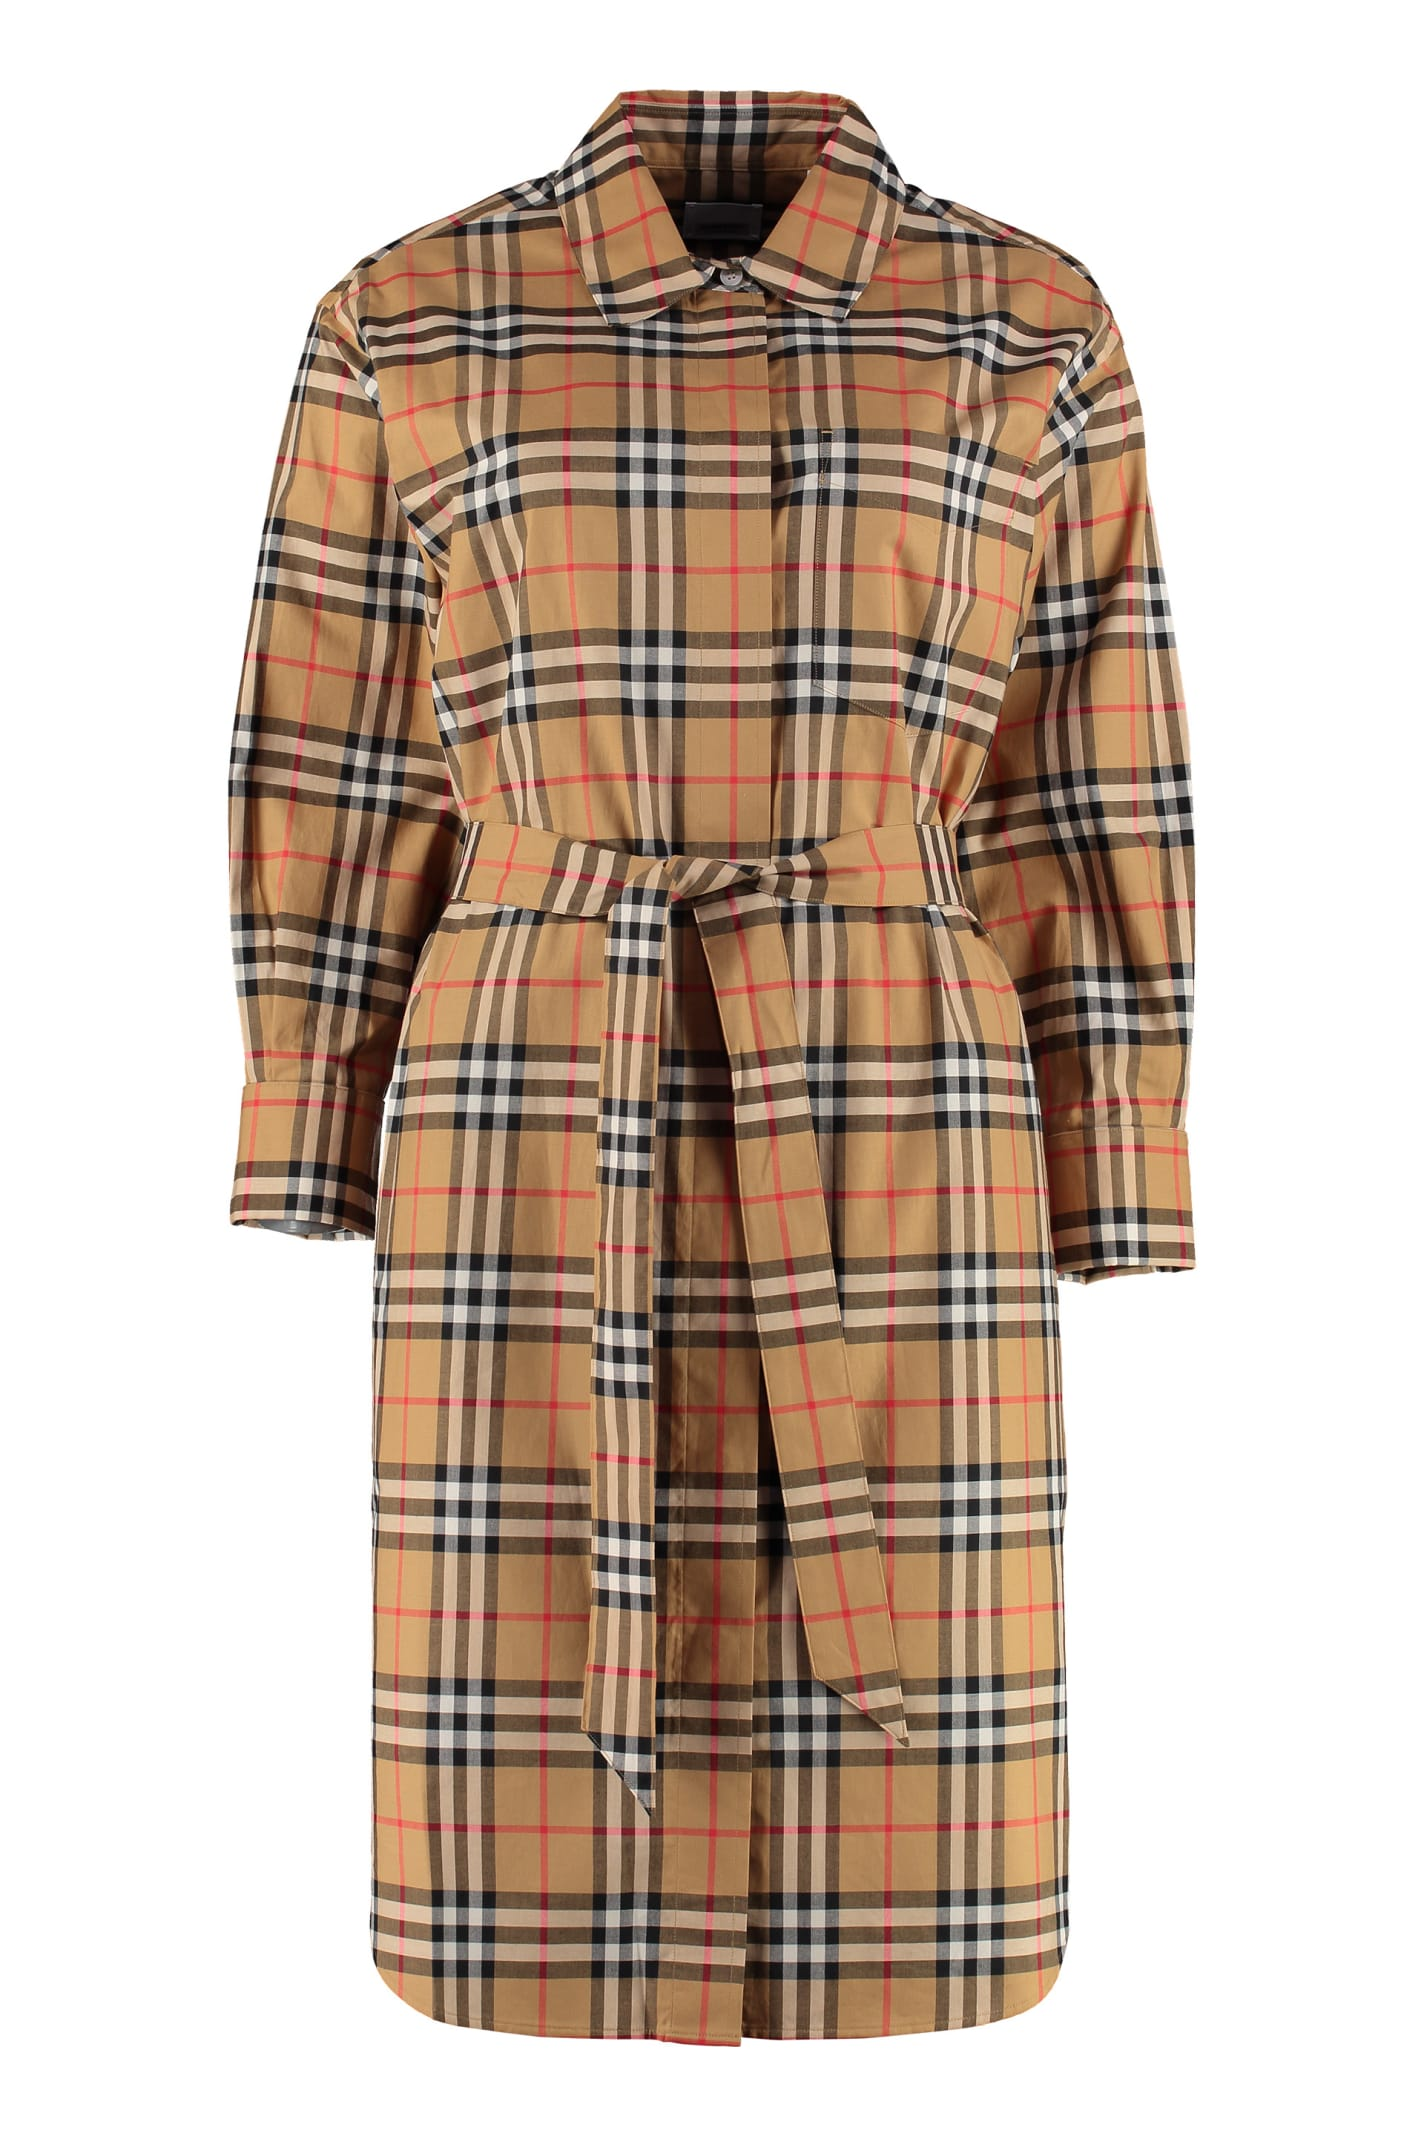 Burberry Vintage Check Cotton Shirtdress